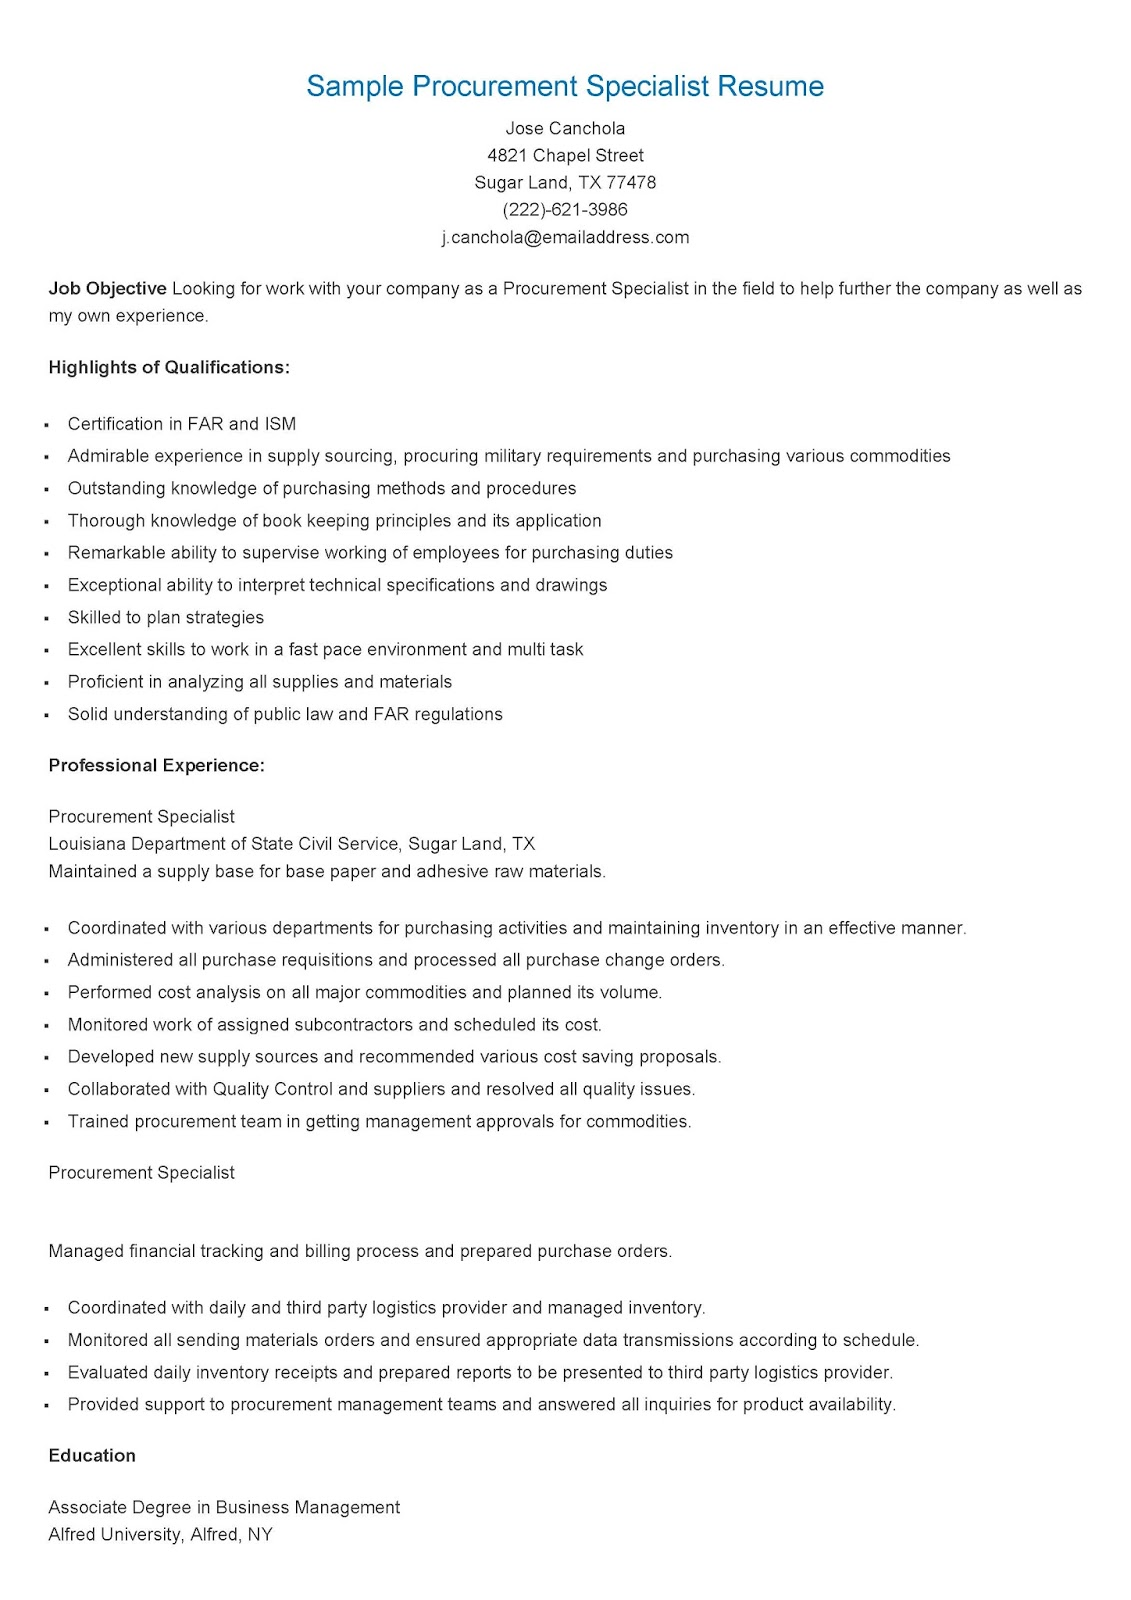 resume samples  sample procurement specialist resume